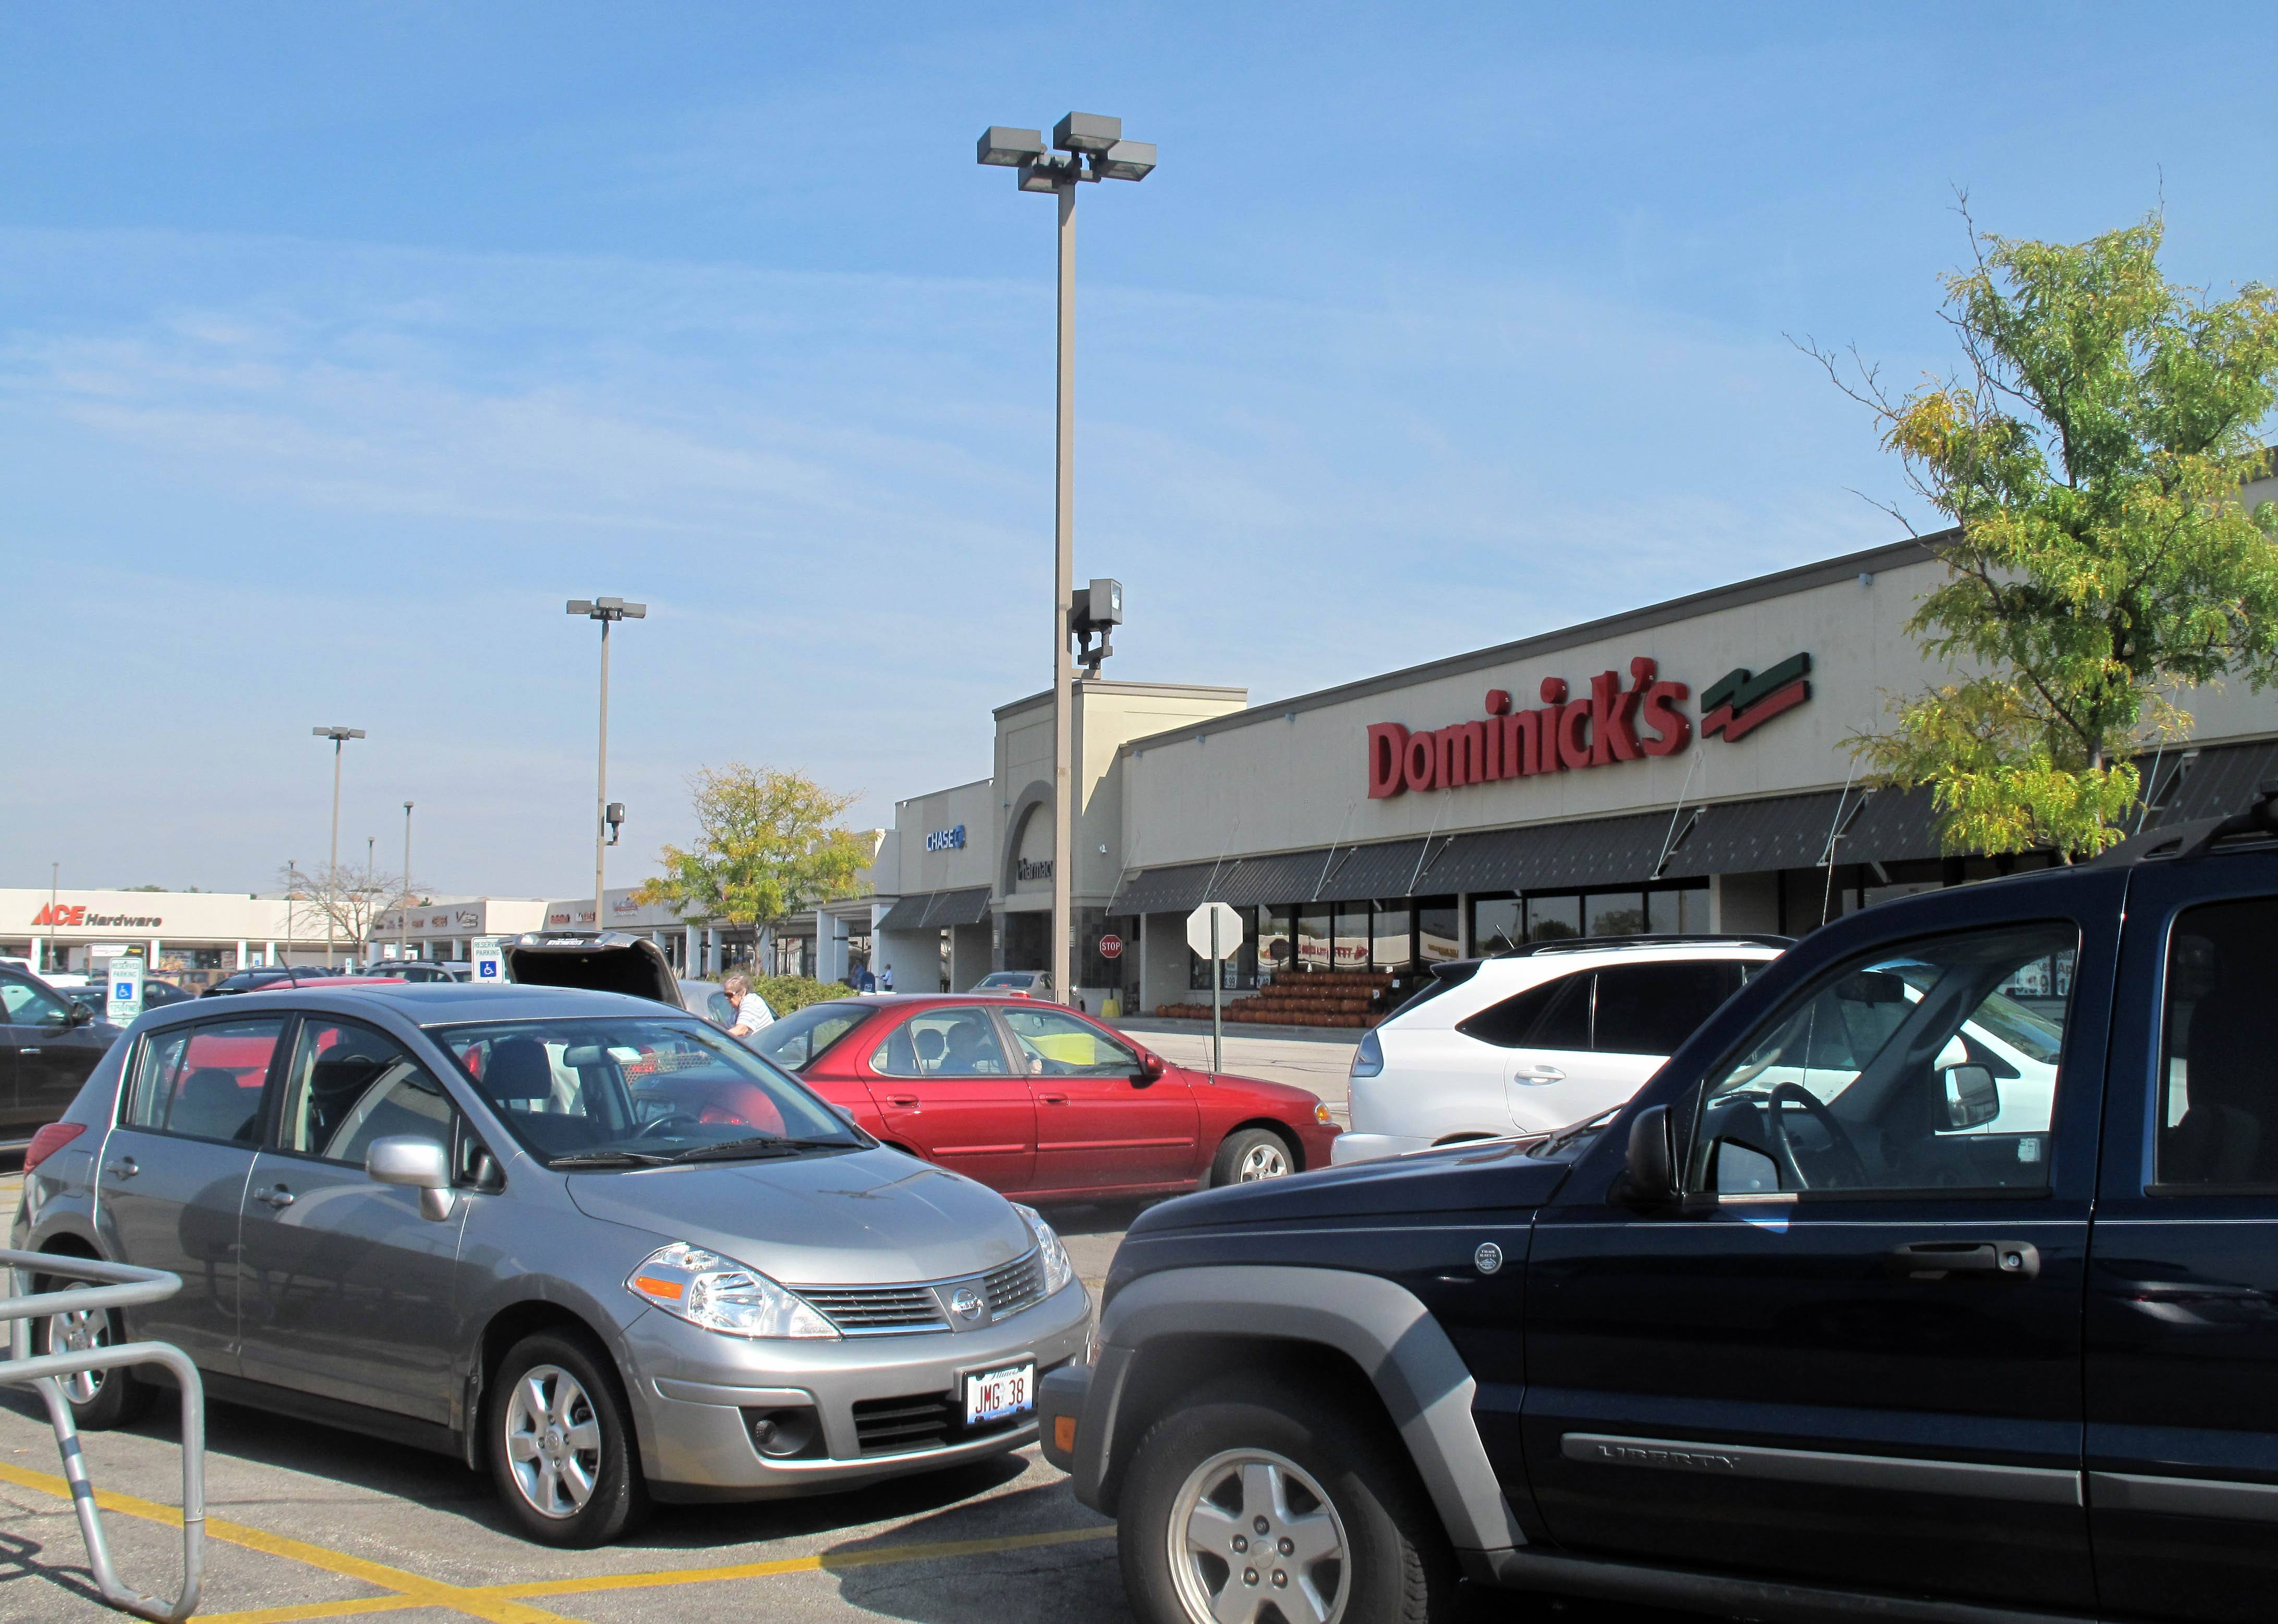 Officials confirmed this week that a Mariano's Fresh Market is moving into the former Dominick's location at 1212 S. Naper Blvd., near 75th Street in Naperville.